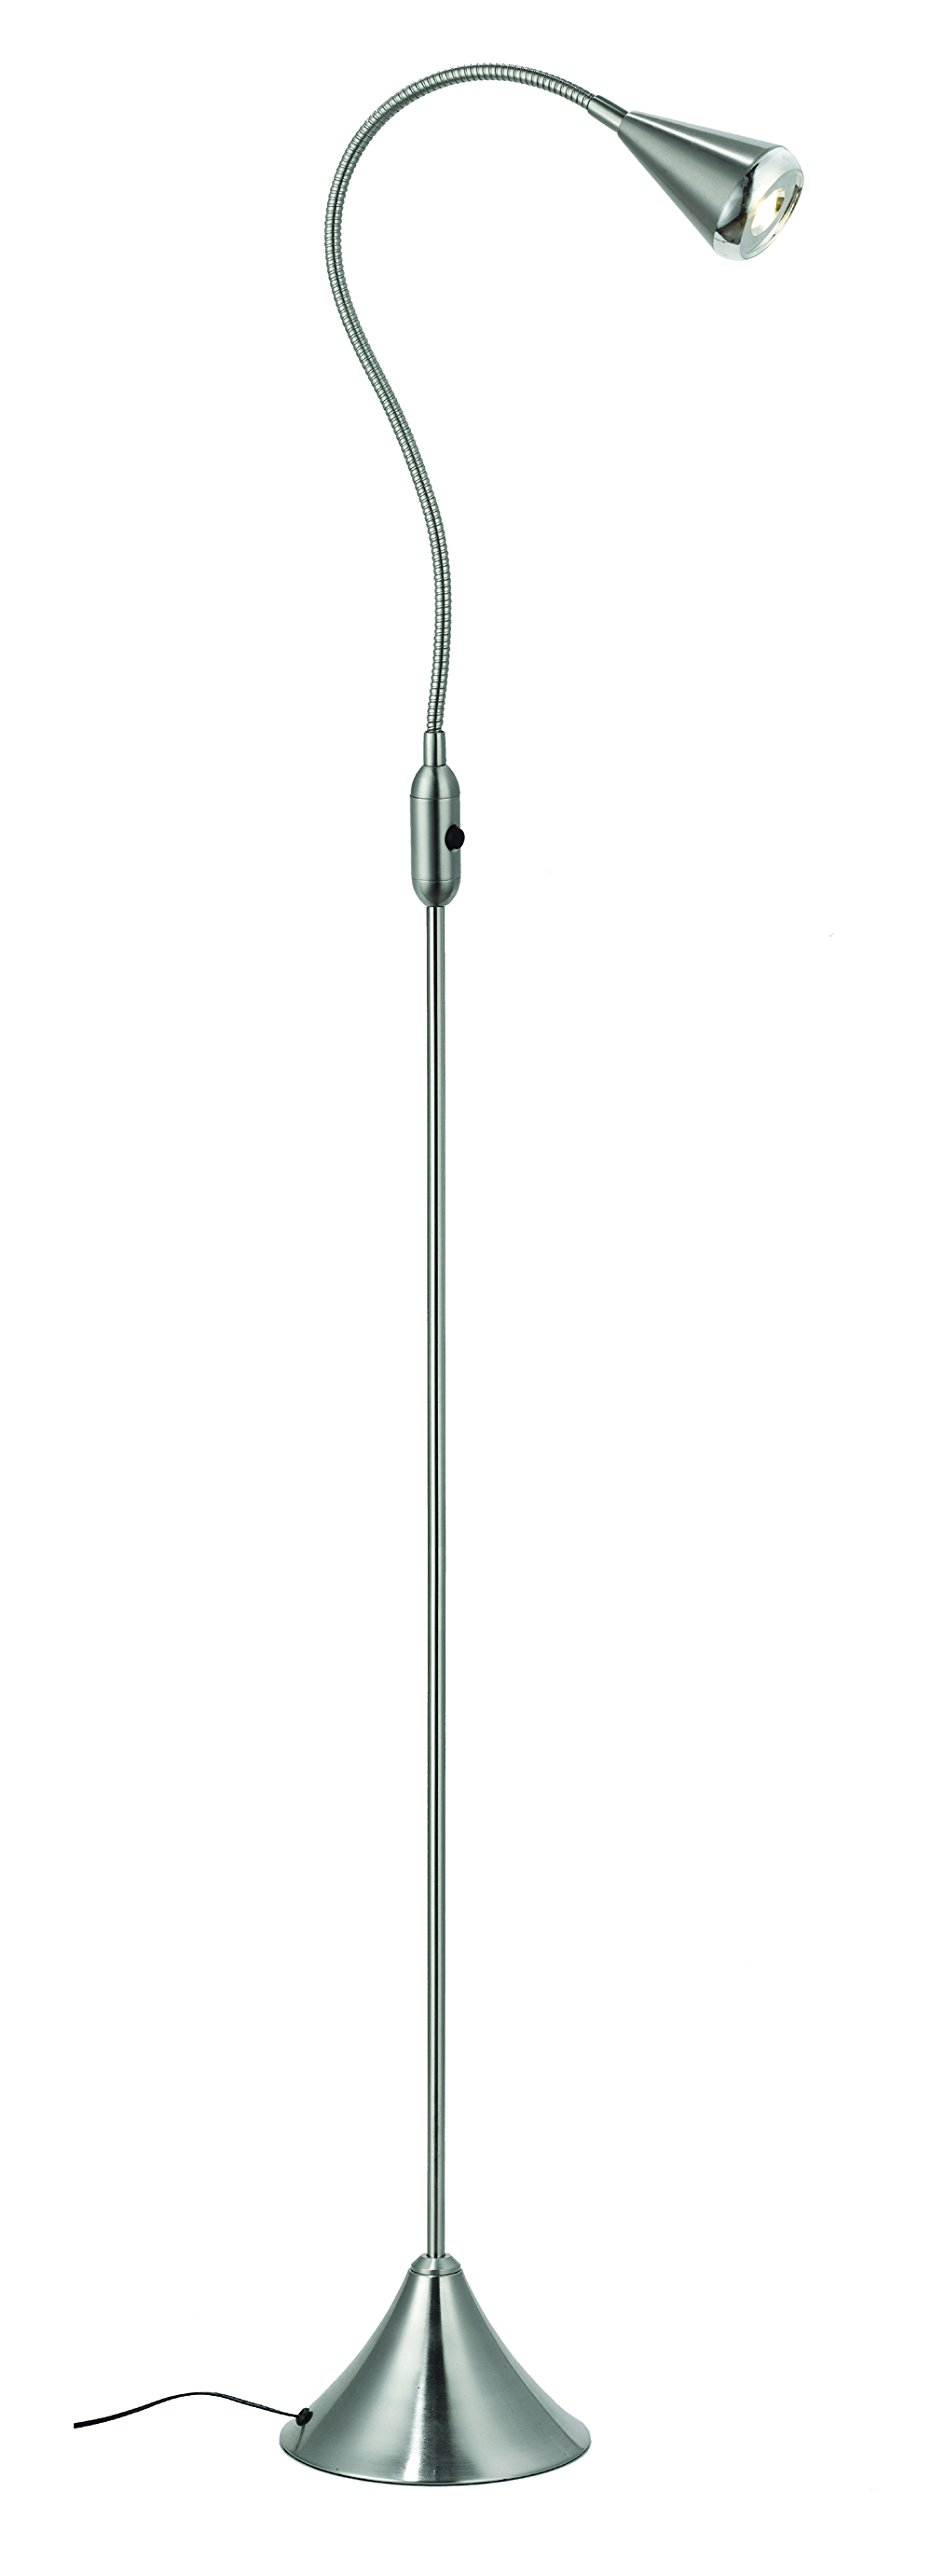 HomeFocus LED Floor Lamp Light,Living Room Floor Lamp Light,Bedside Floor Lamp Light,Metal, Satin Nickel,Flexible Gooseneck,LED4.2-5W,3000K Warm White,Top Quality,Energy Efficient,Super Bright. by HomeFocus